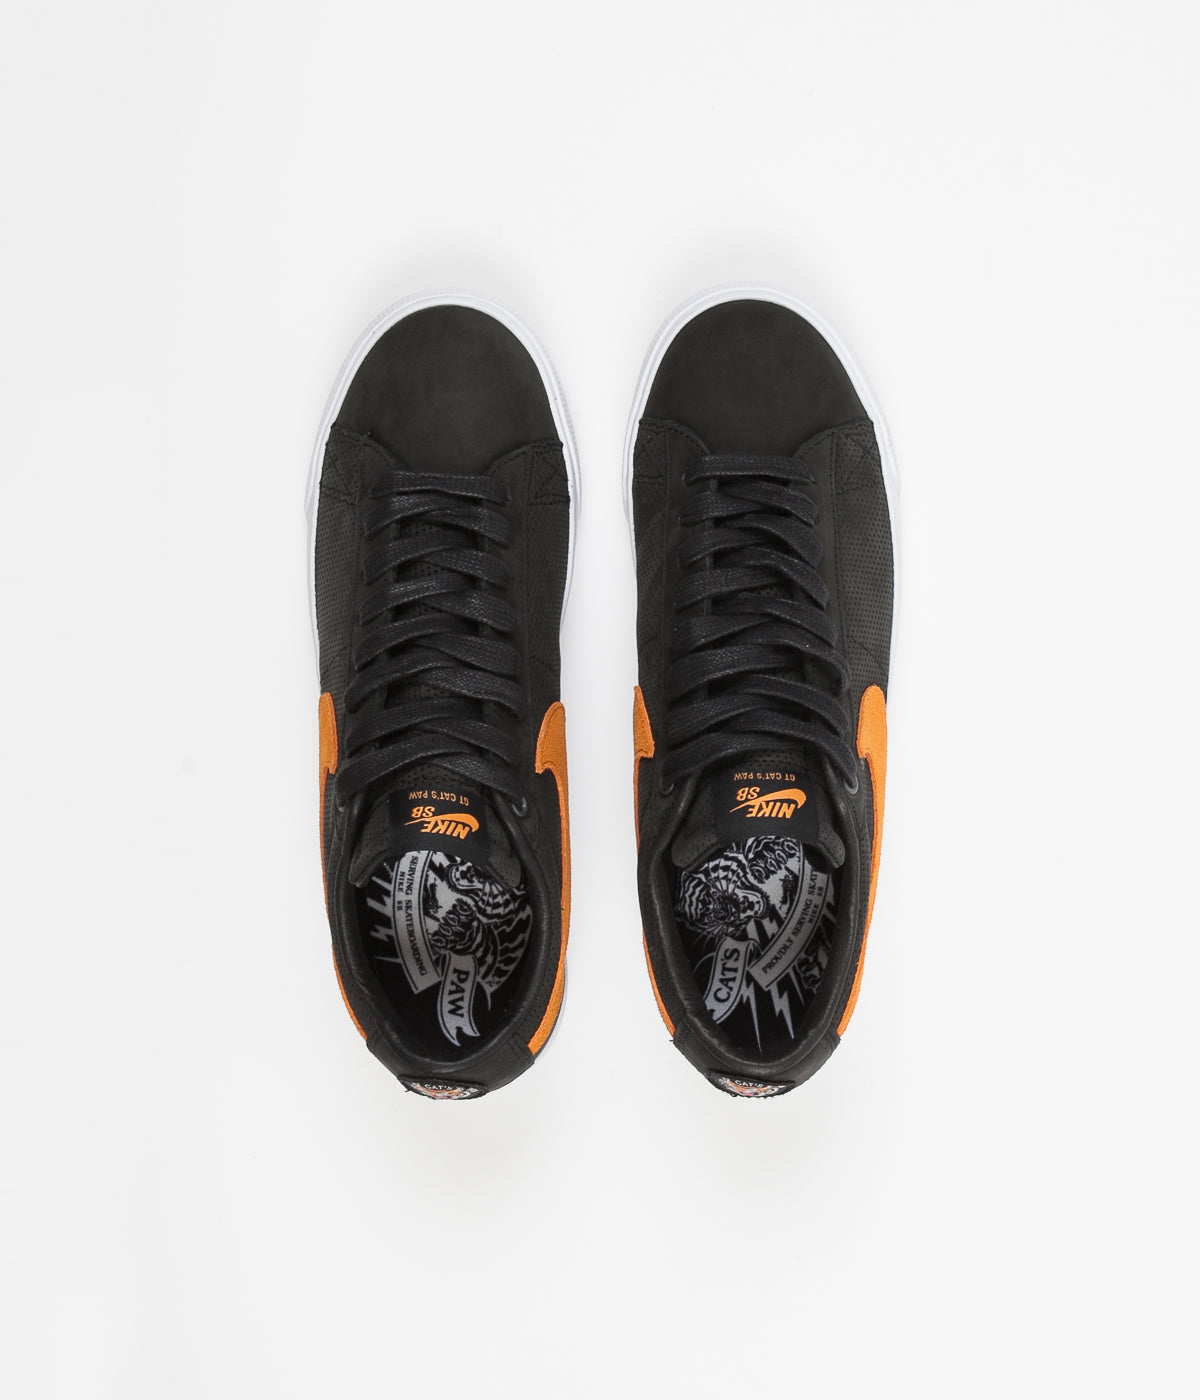 Nike SB x Cat's Paw Blazer Low GT Shoes  - Black / Vivid Orange - White